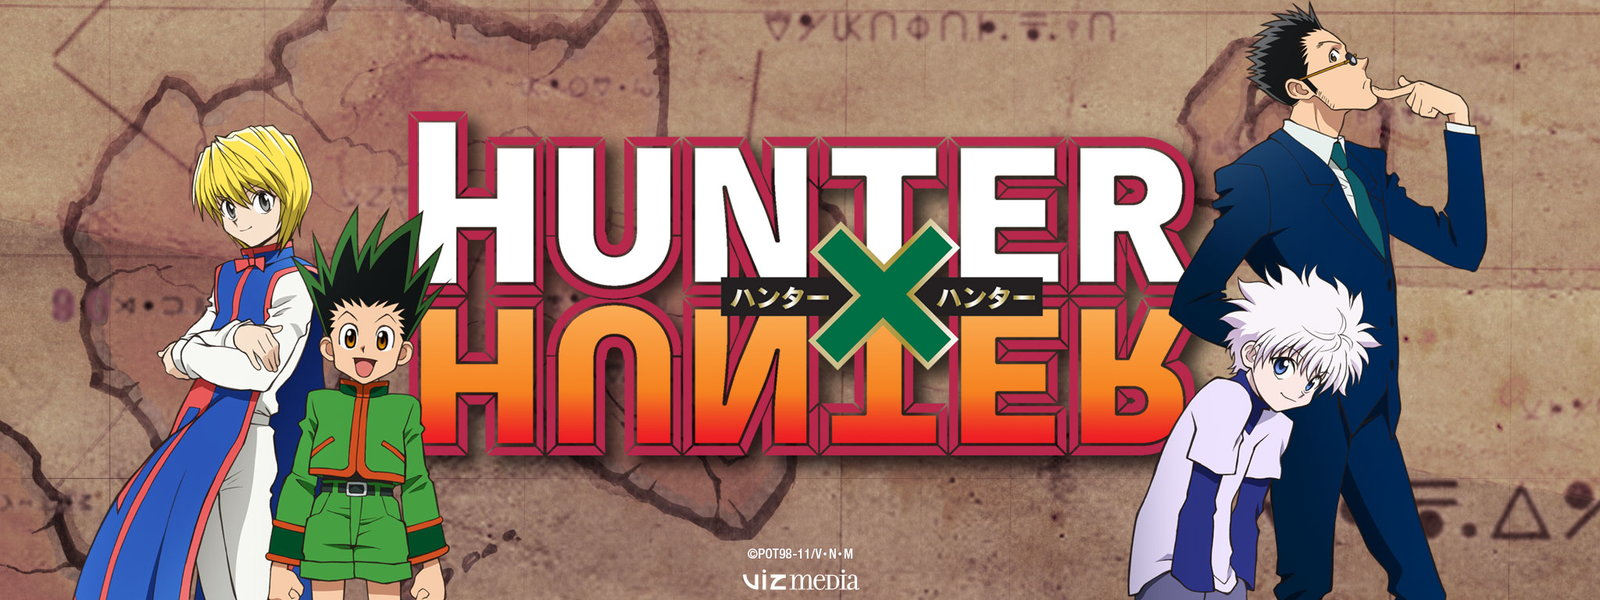 HunterXHunter banner